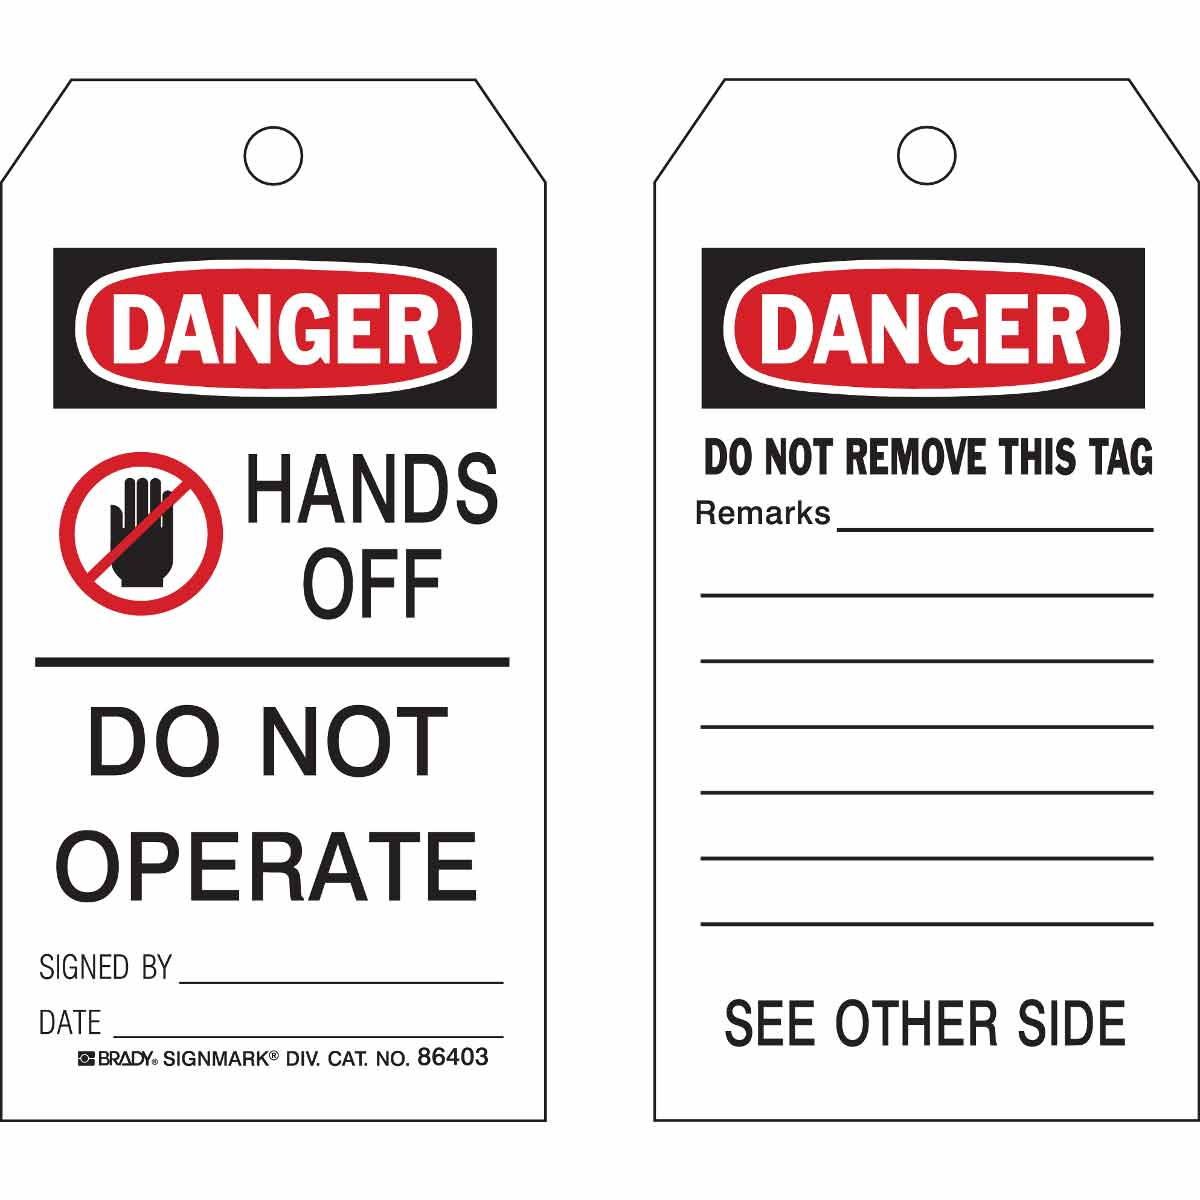 """Brady 86403 """"HANDS OFF - DO NOT OPERATE"""" Accident Prevention Tag, Heavy-Duty Polyester (10/Pkg)"""